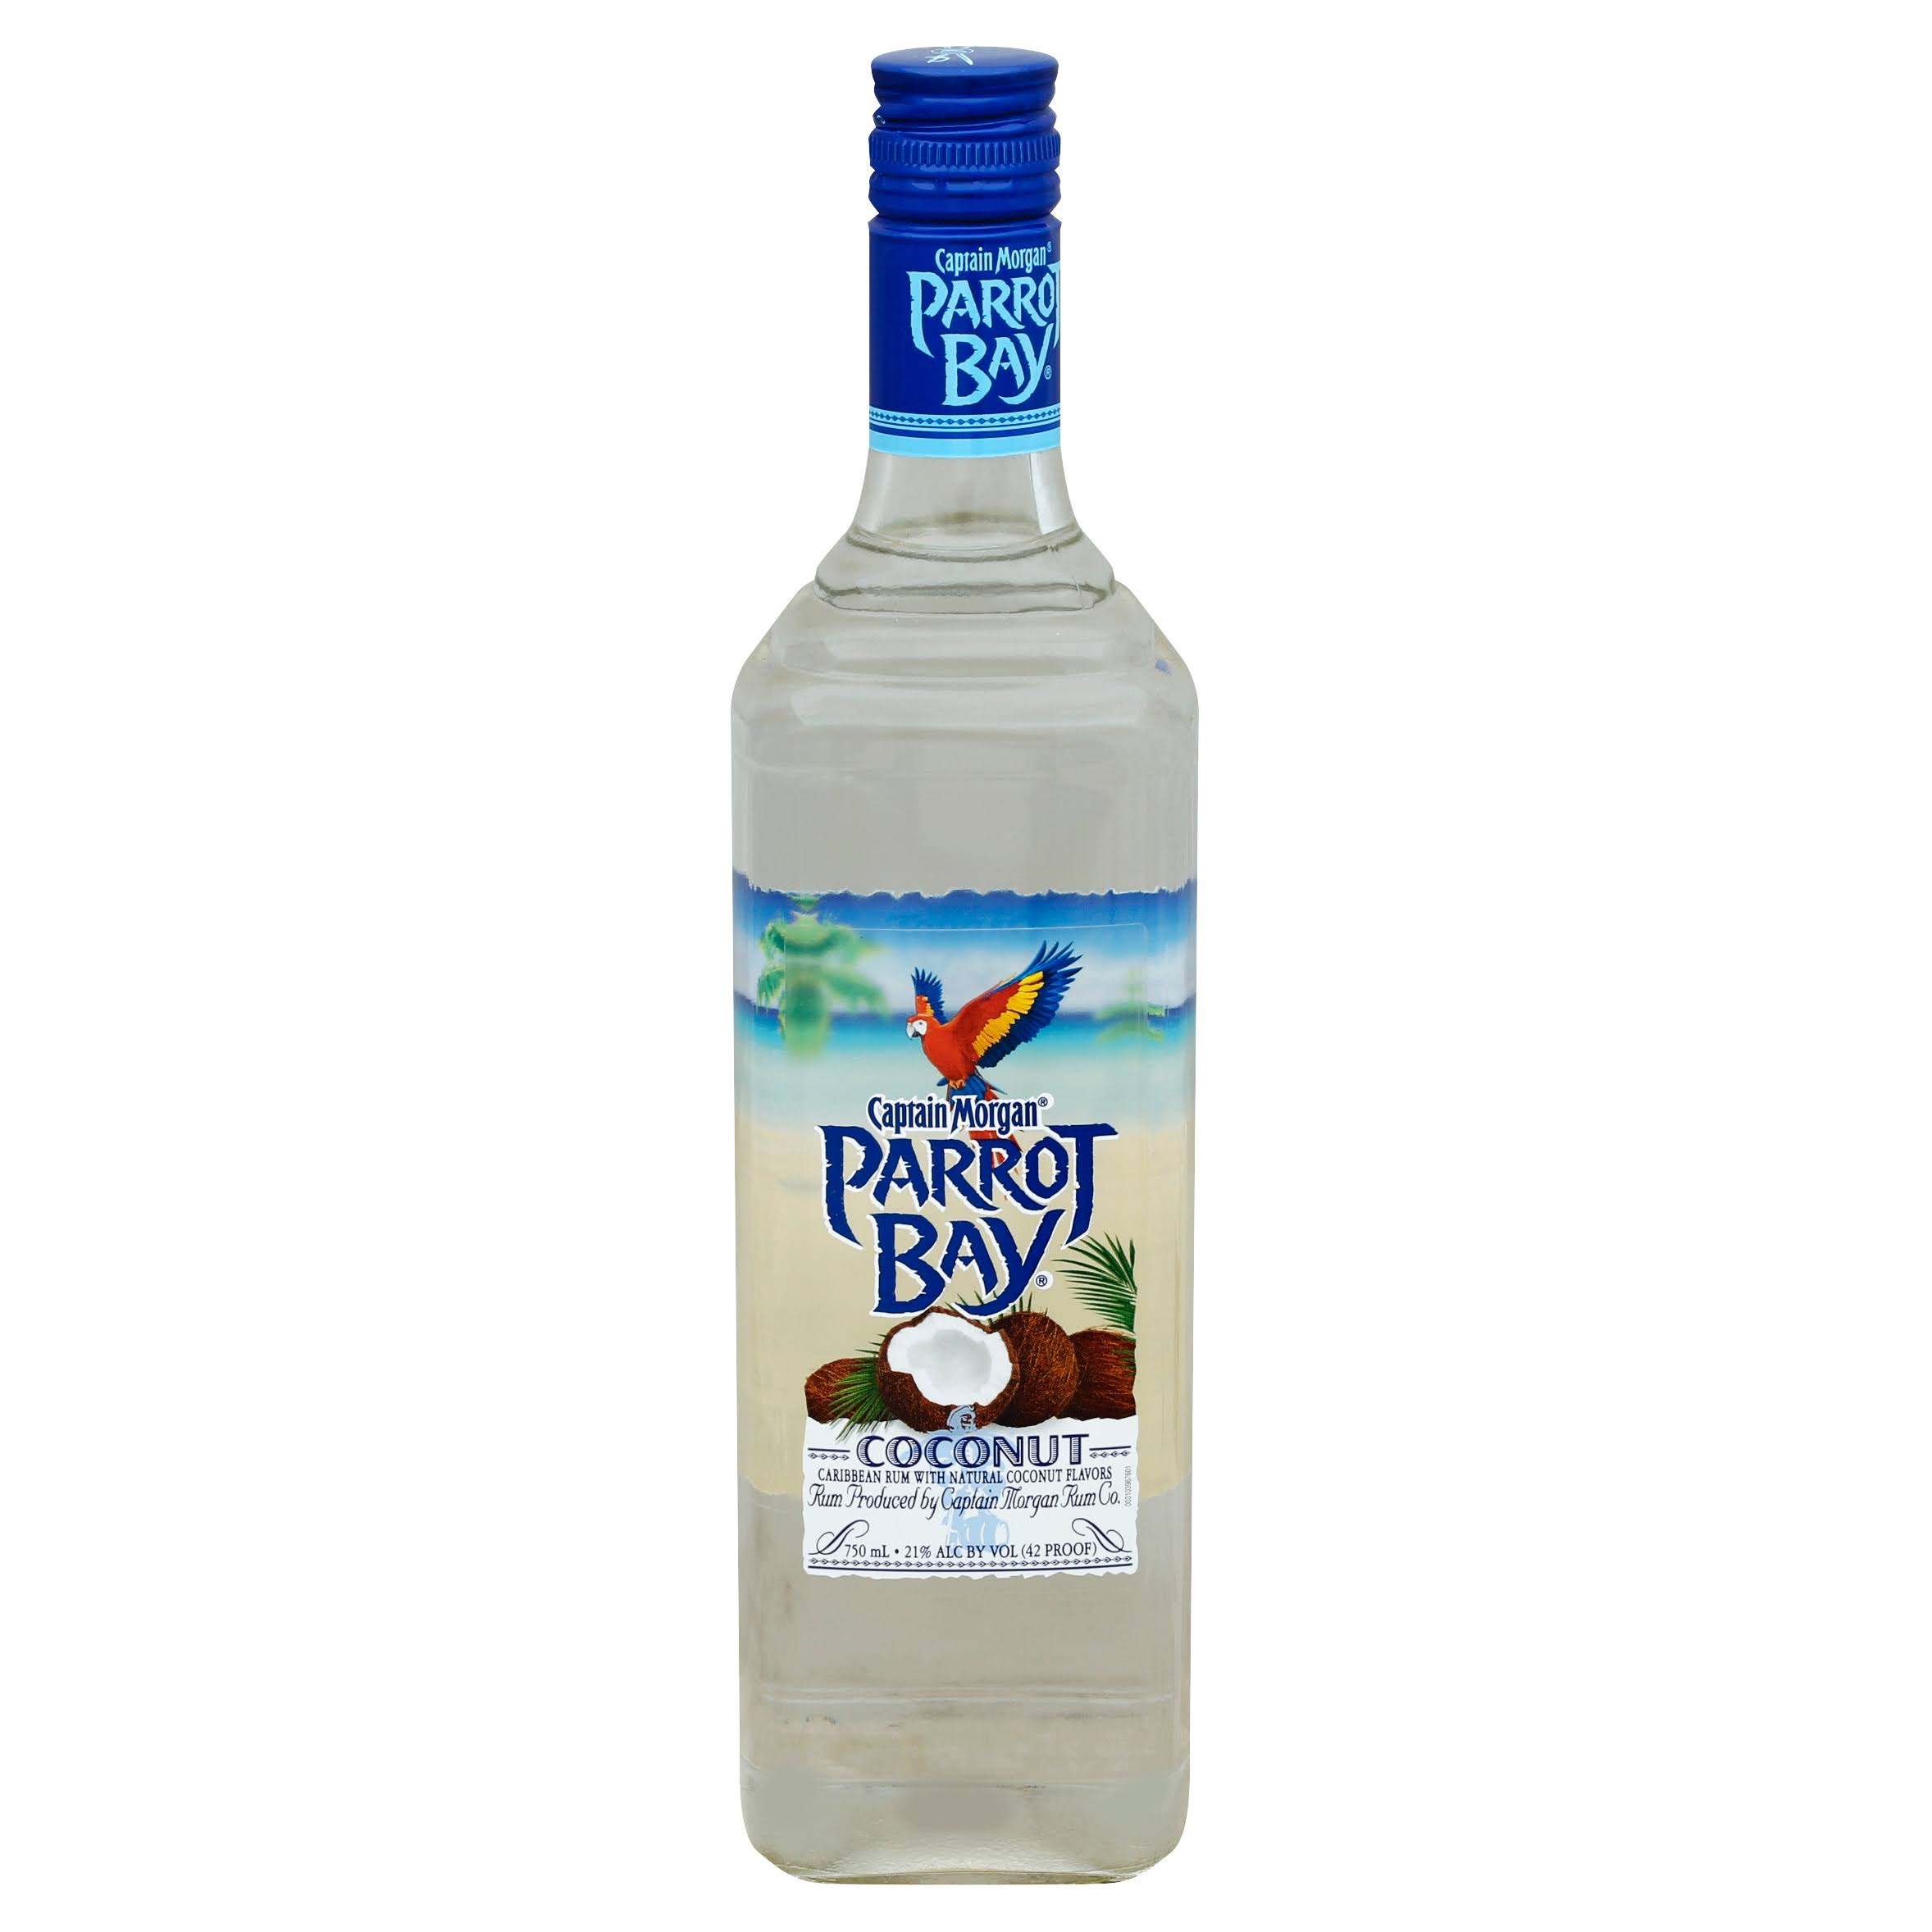 Parrot Bay Rum, Coconut - 750 ml